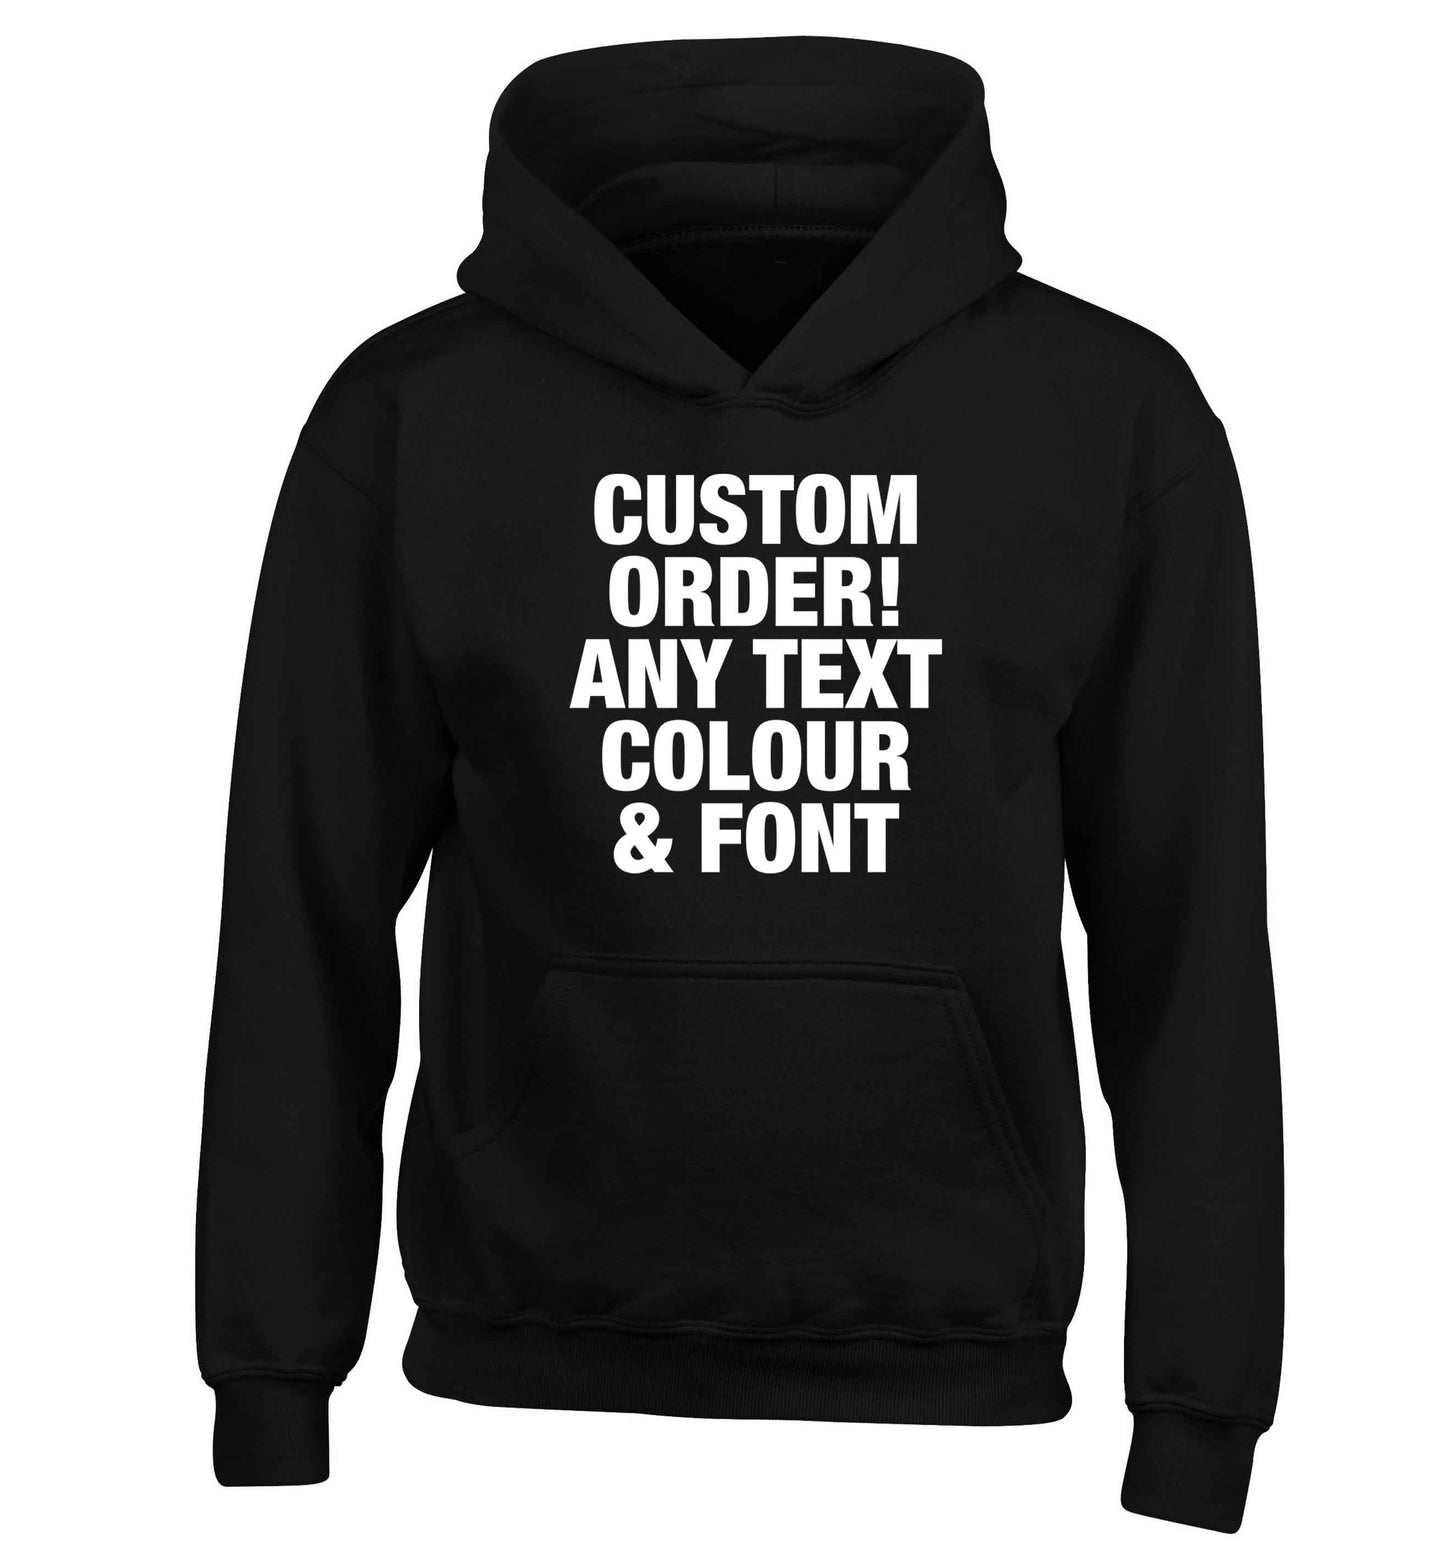 Custom order any text colour and font children's black hoodie 12-13 Years